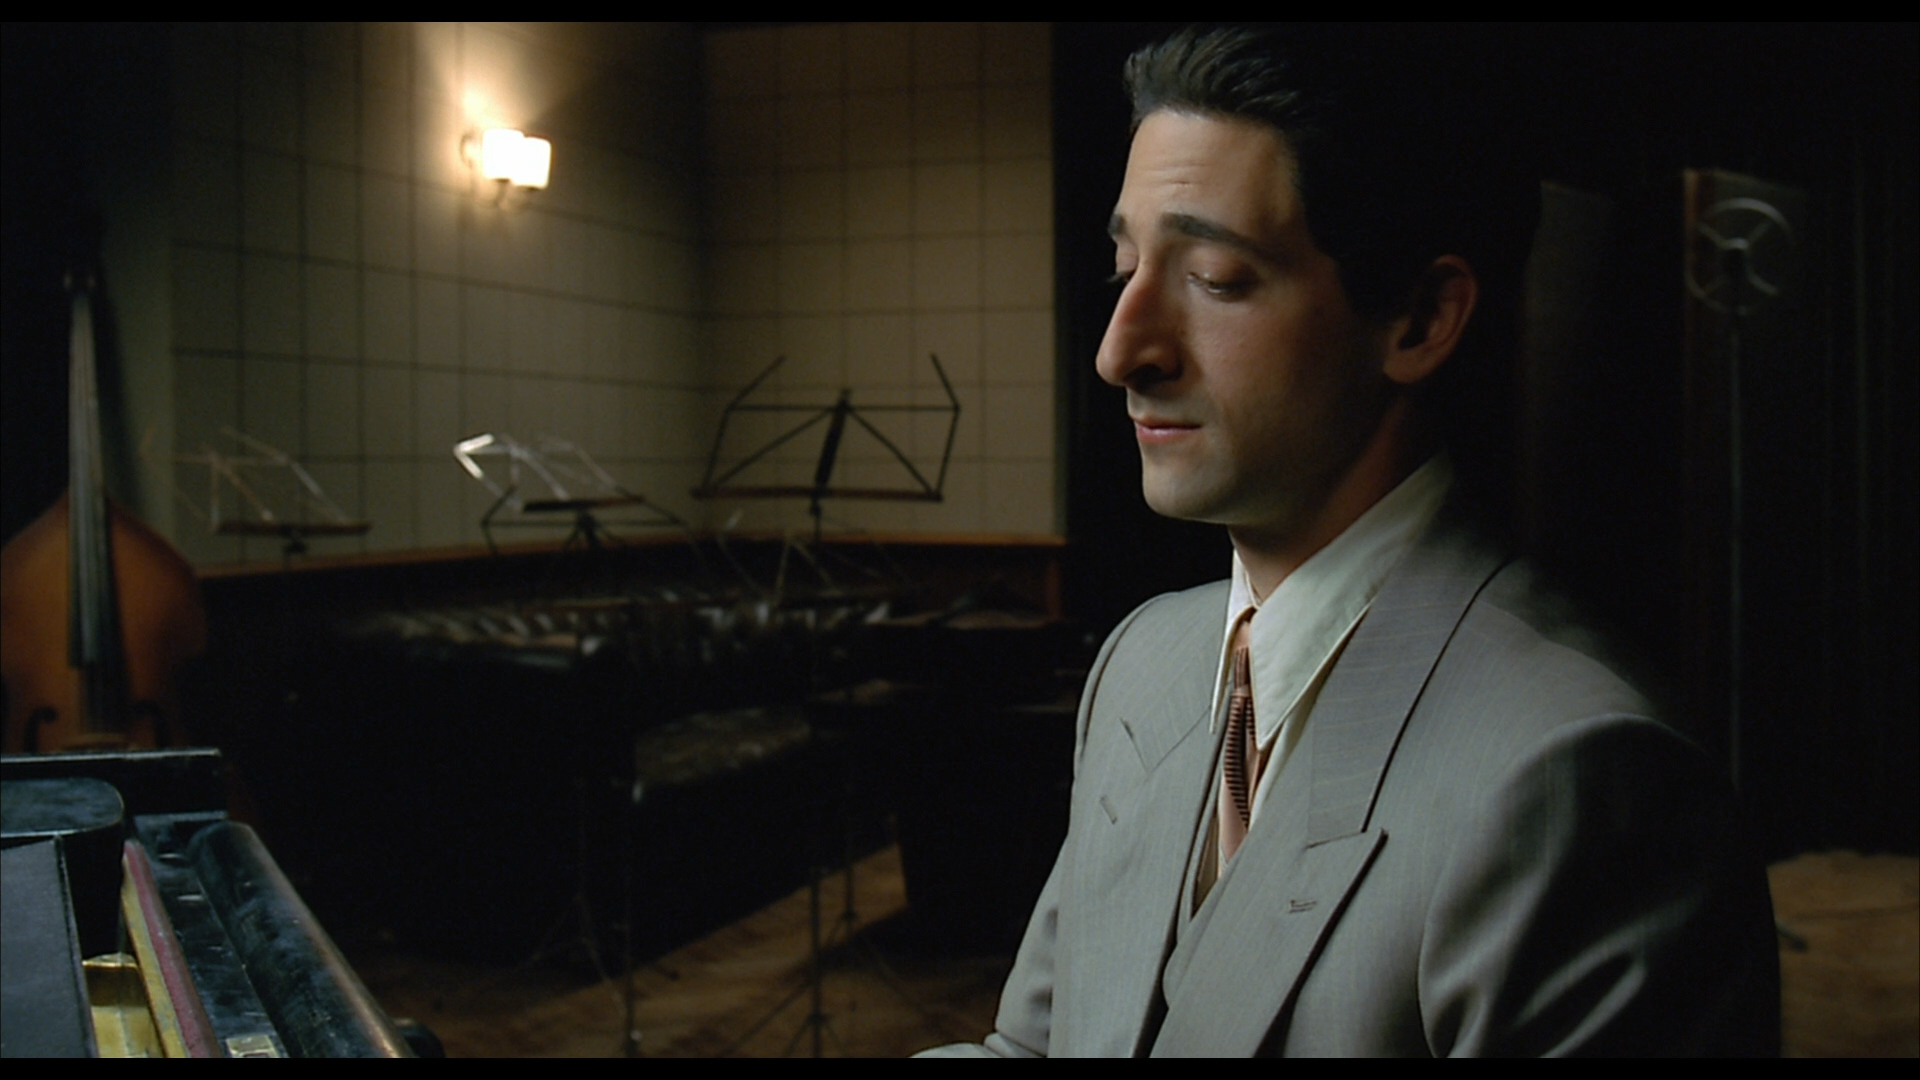 an analysis of the character of wladyslaw szpilman in the movie the pianist by roman polanski Johnson 1 kayla johnson prof hirchfelder, k-213 eng2102, sec 06 26 march 2013 scene analysis paper musical dependency the 2002 film, the pianist directed by roman polanski focuses on the hardships of a well-known, local concert pianist, wladyslaw szpilman.